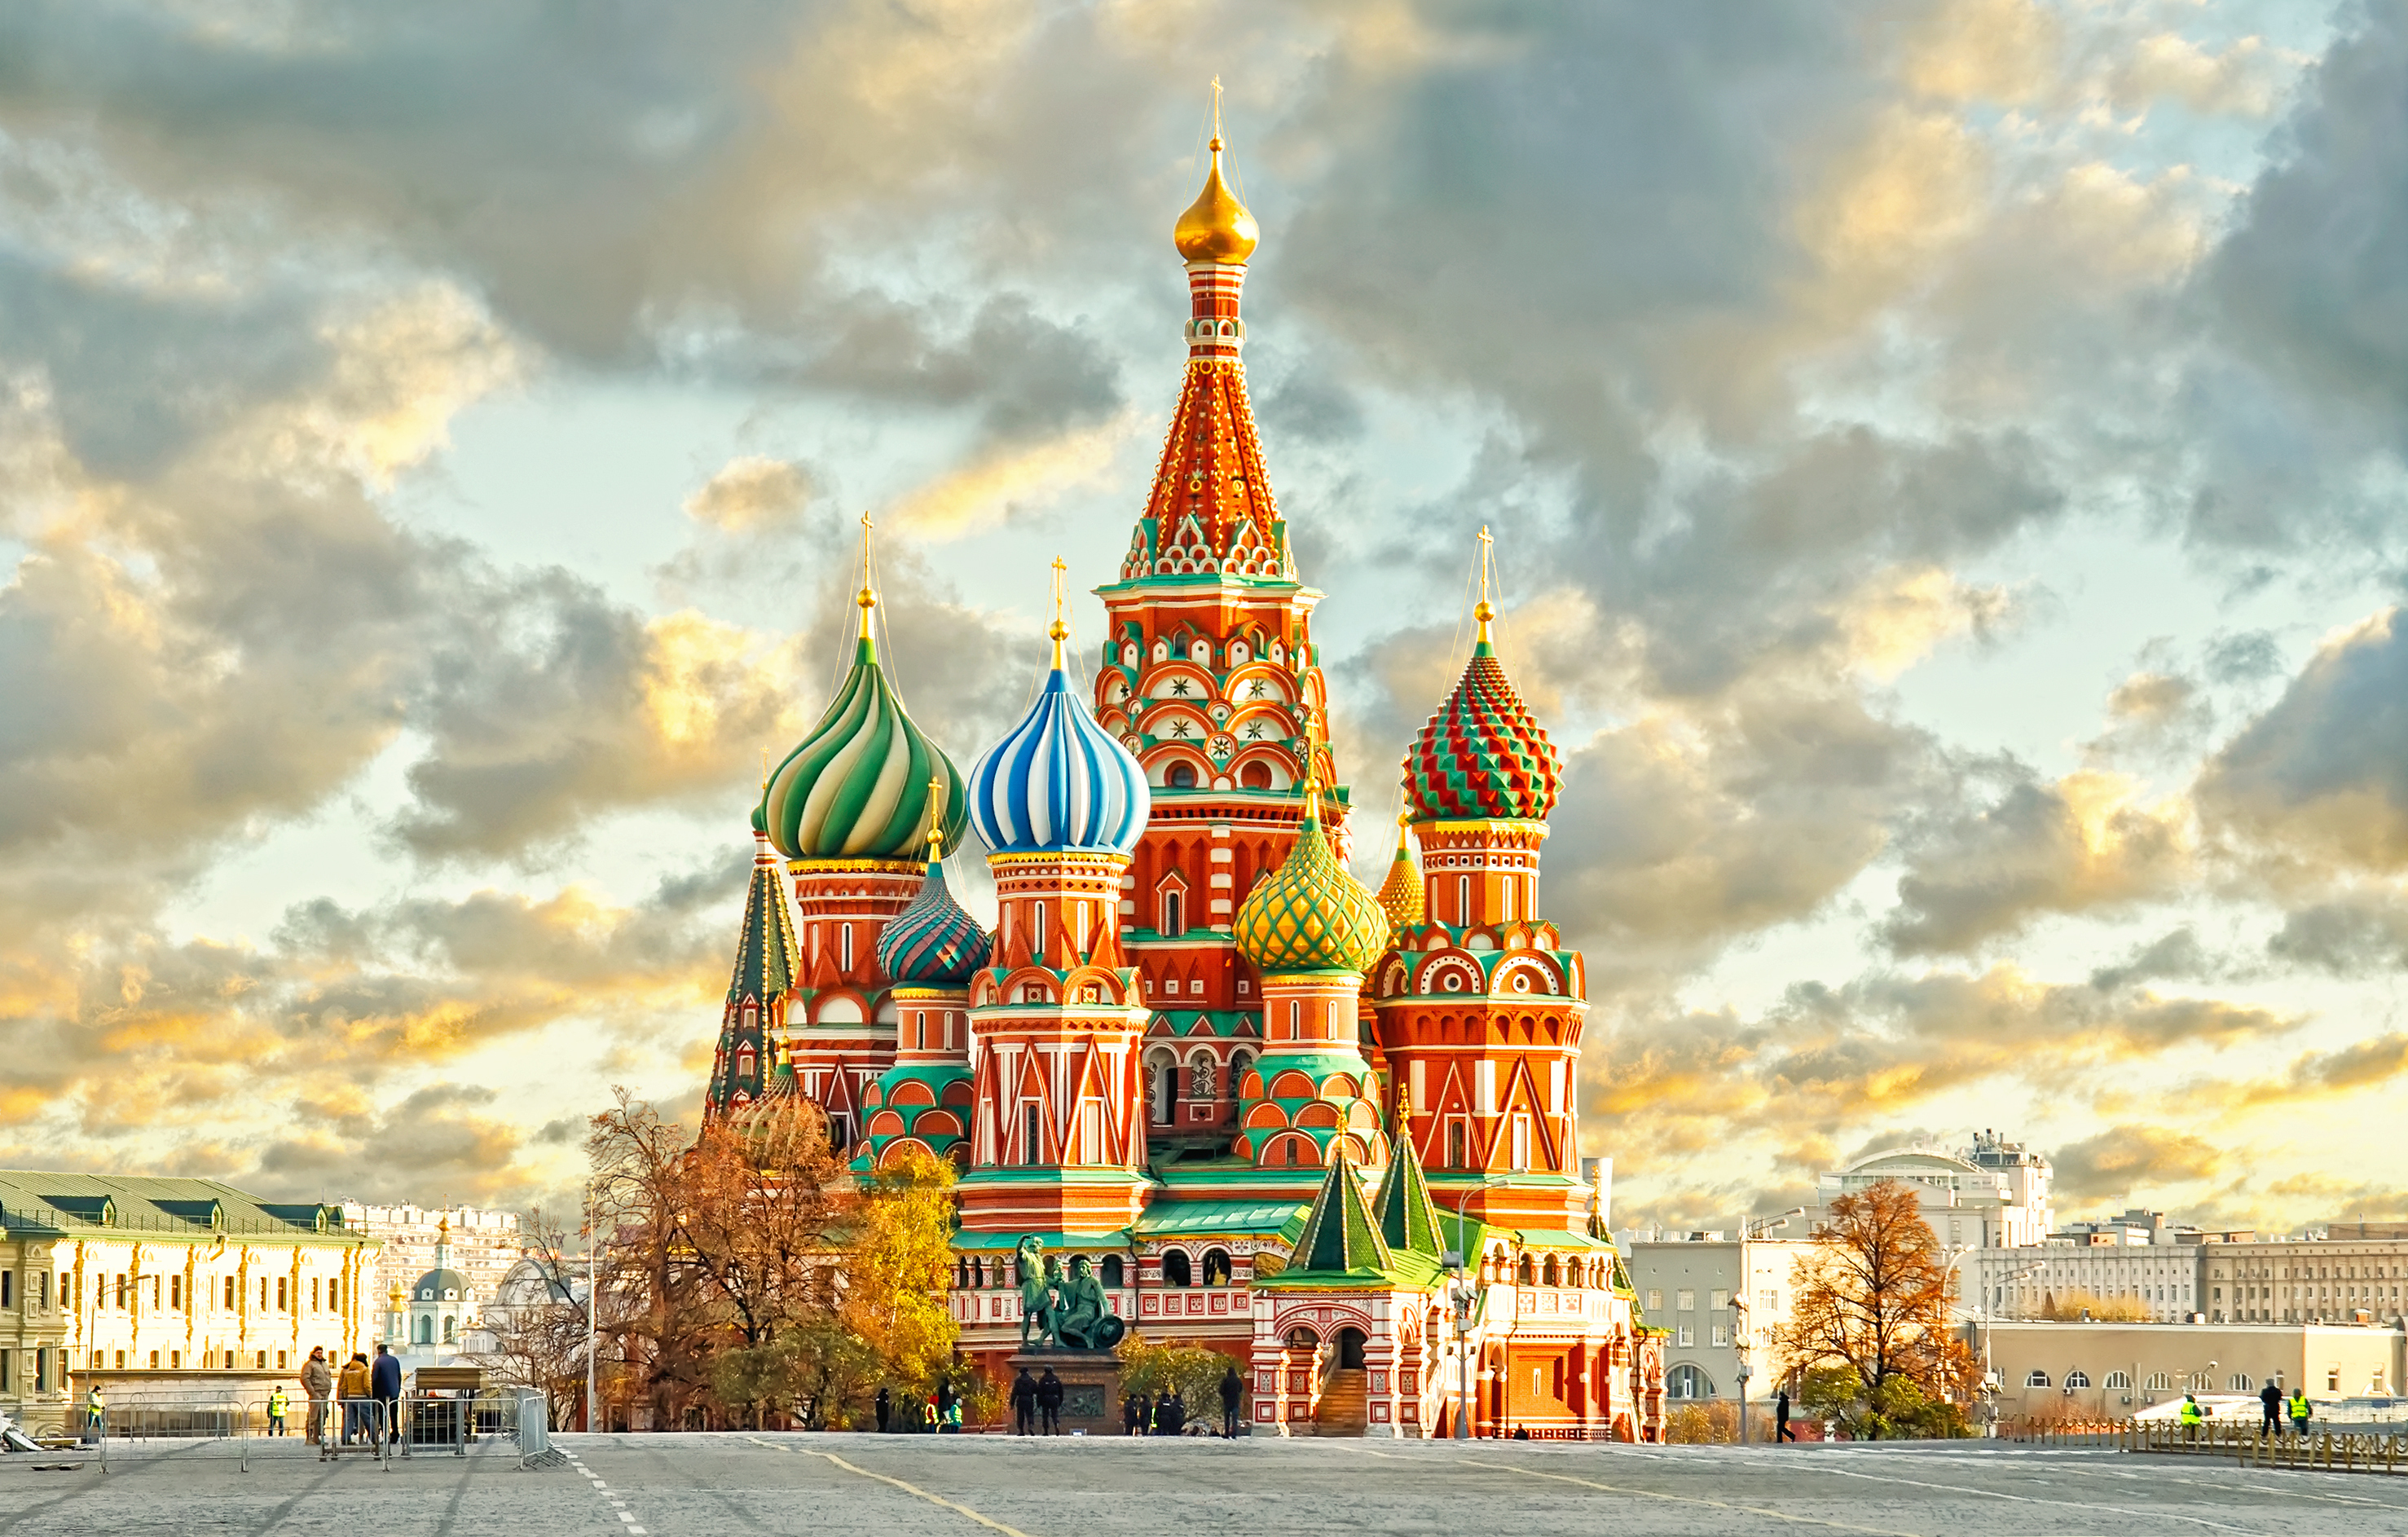 Moscow's St. Basil's Cathedral